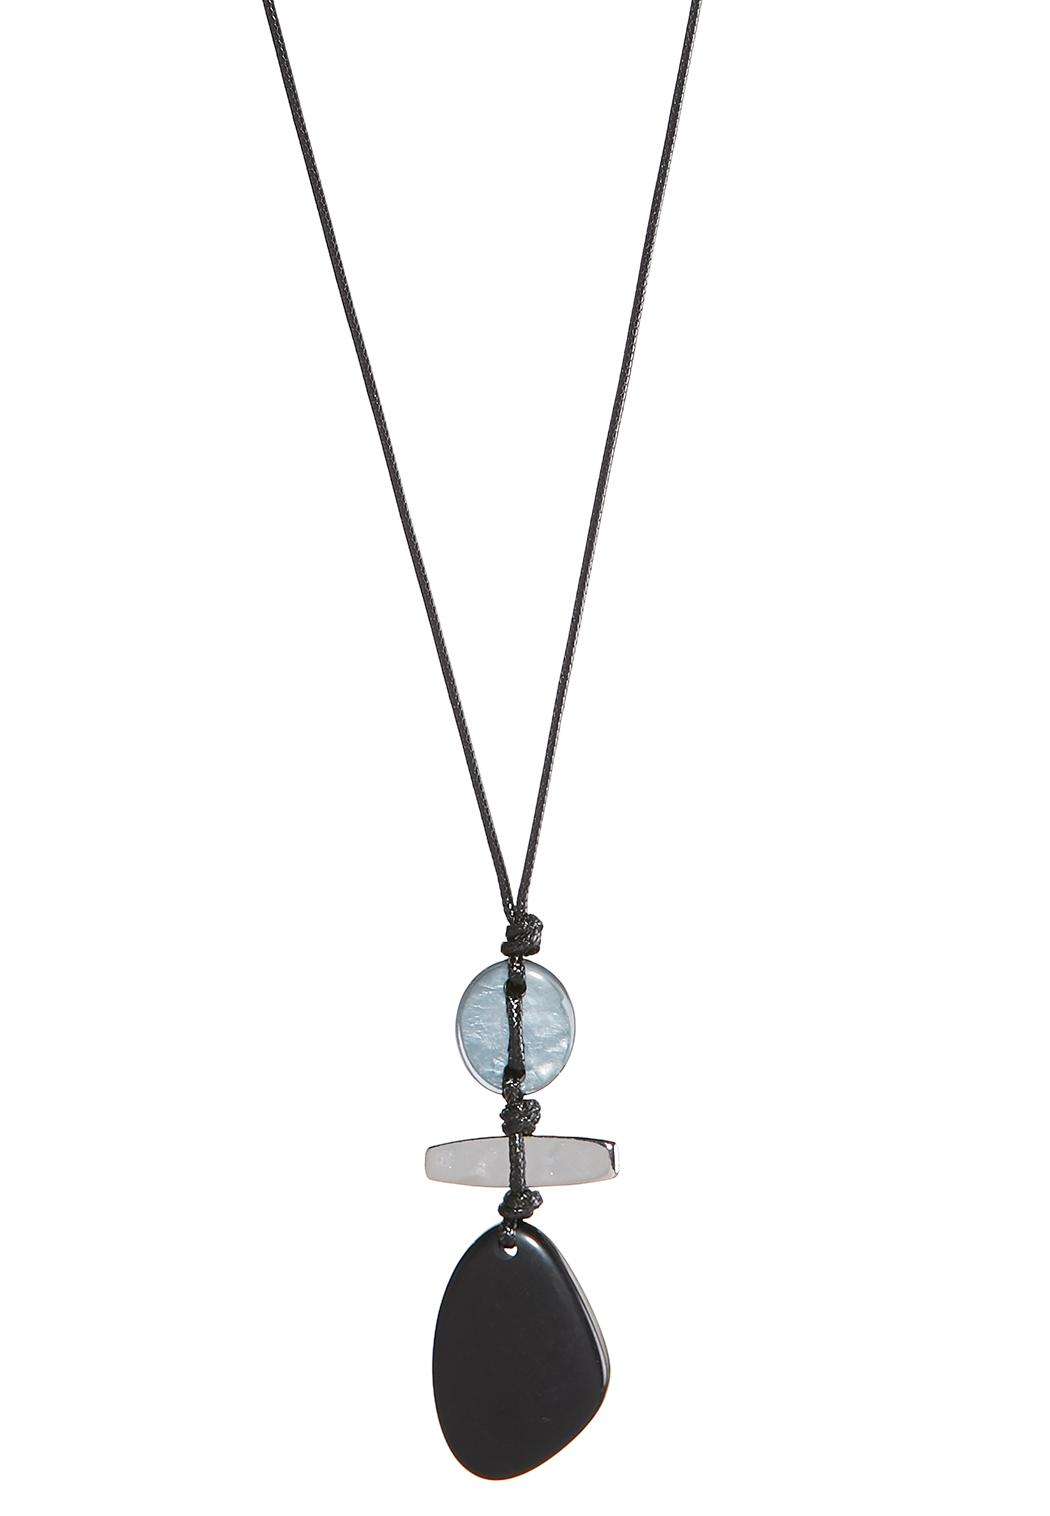 Dark stone pendant cord necklace long cato fashions dark stone pendant cord necklace aloadofball Choice Image